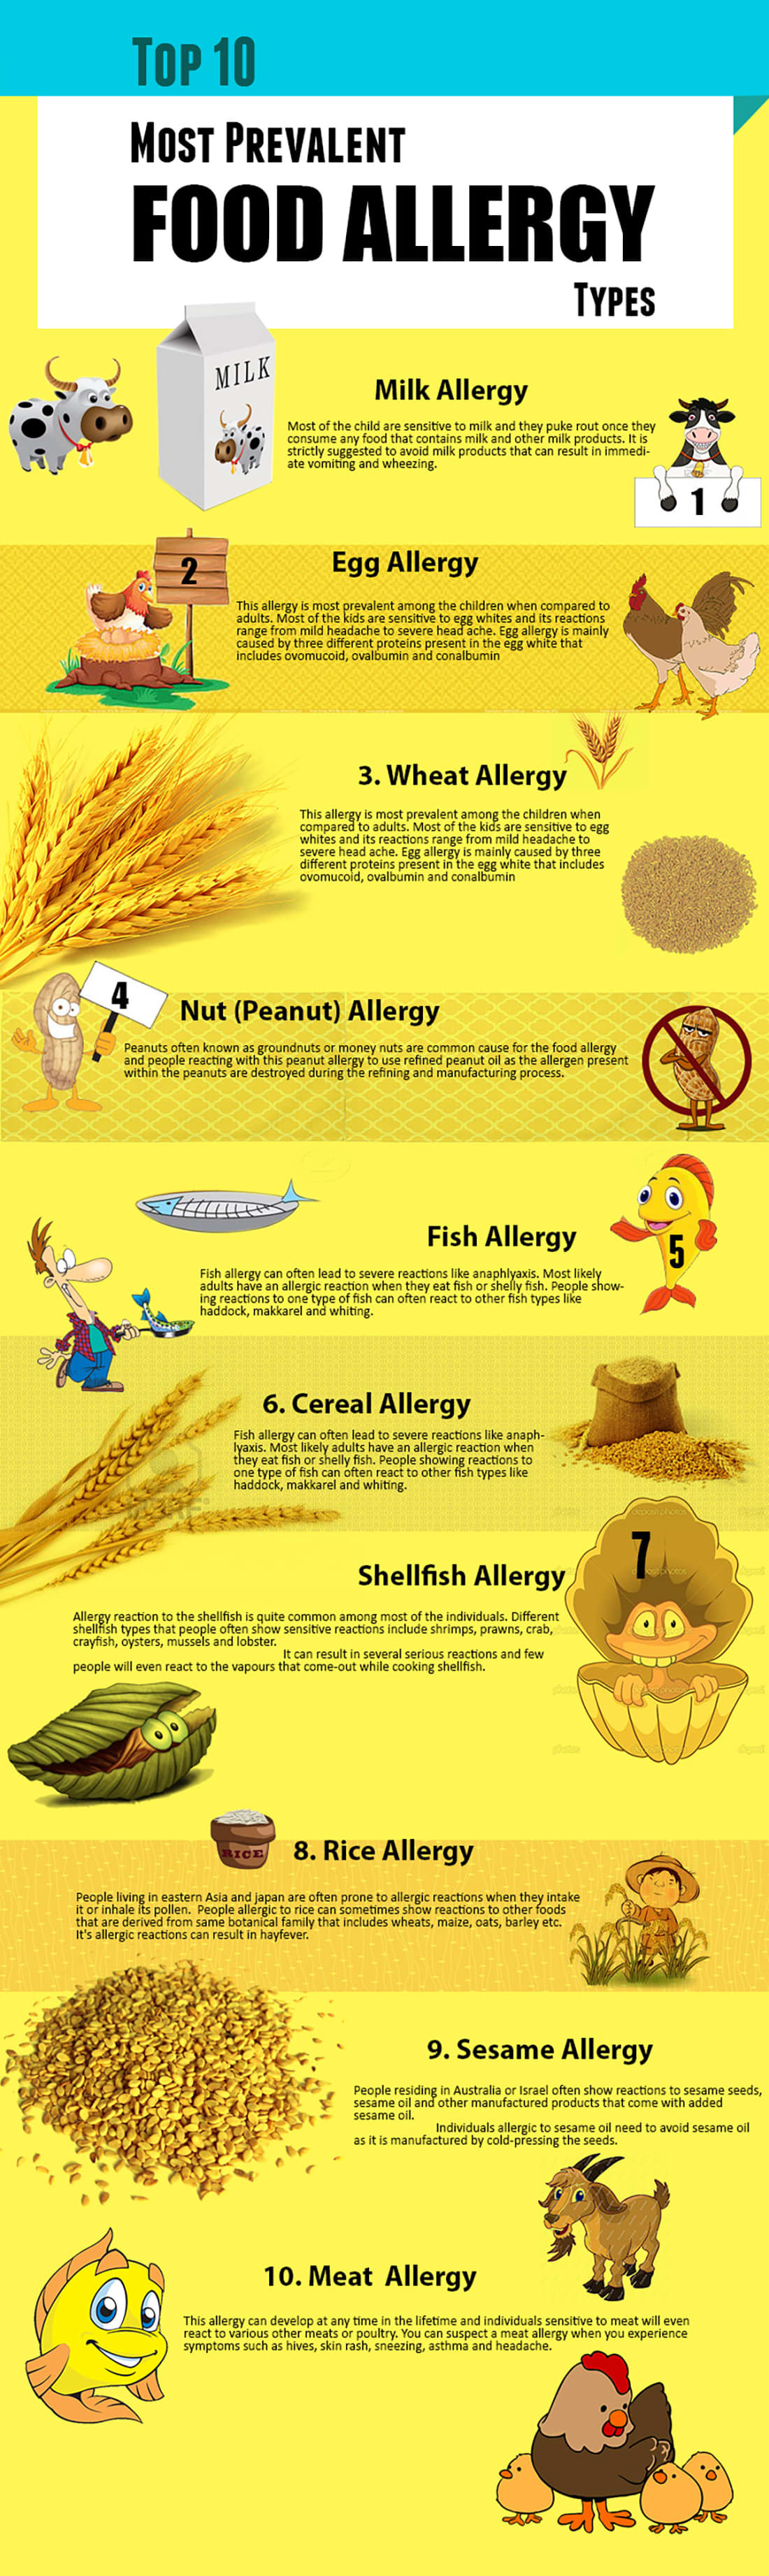 Wheat, Gluten, Dairy, Eggs and Nuts